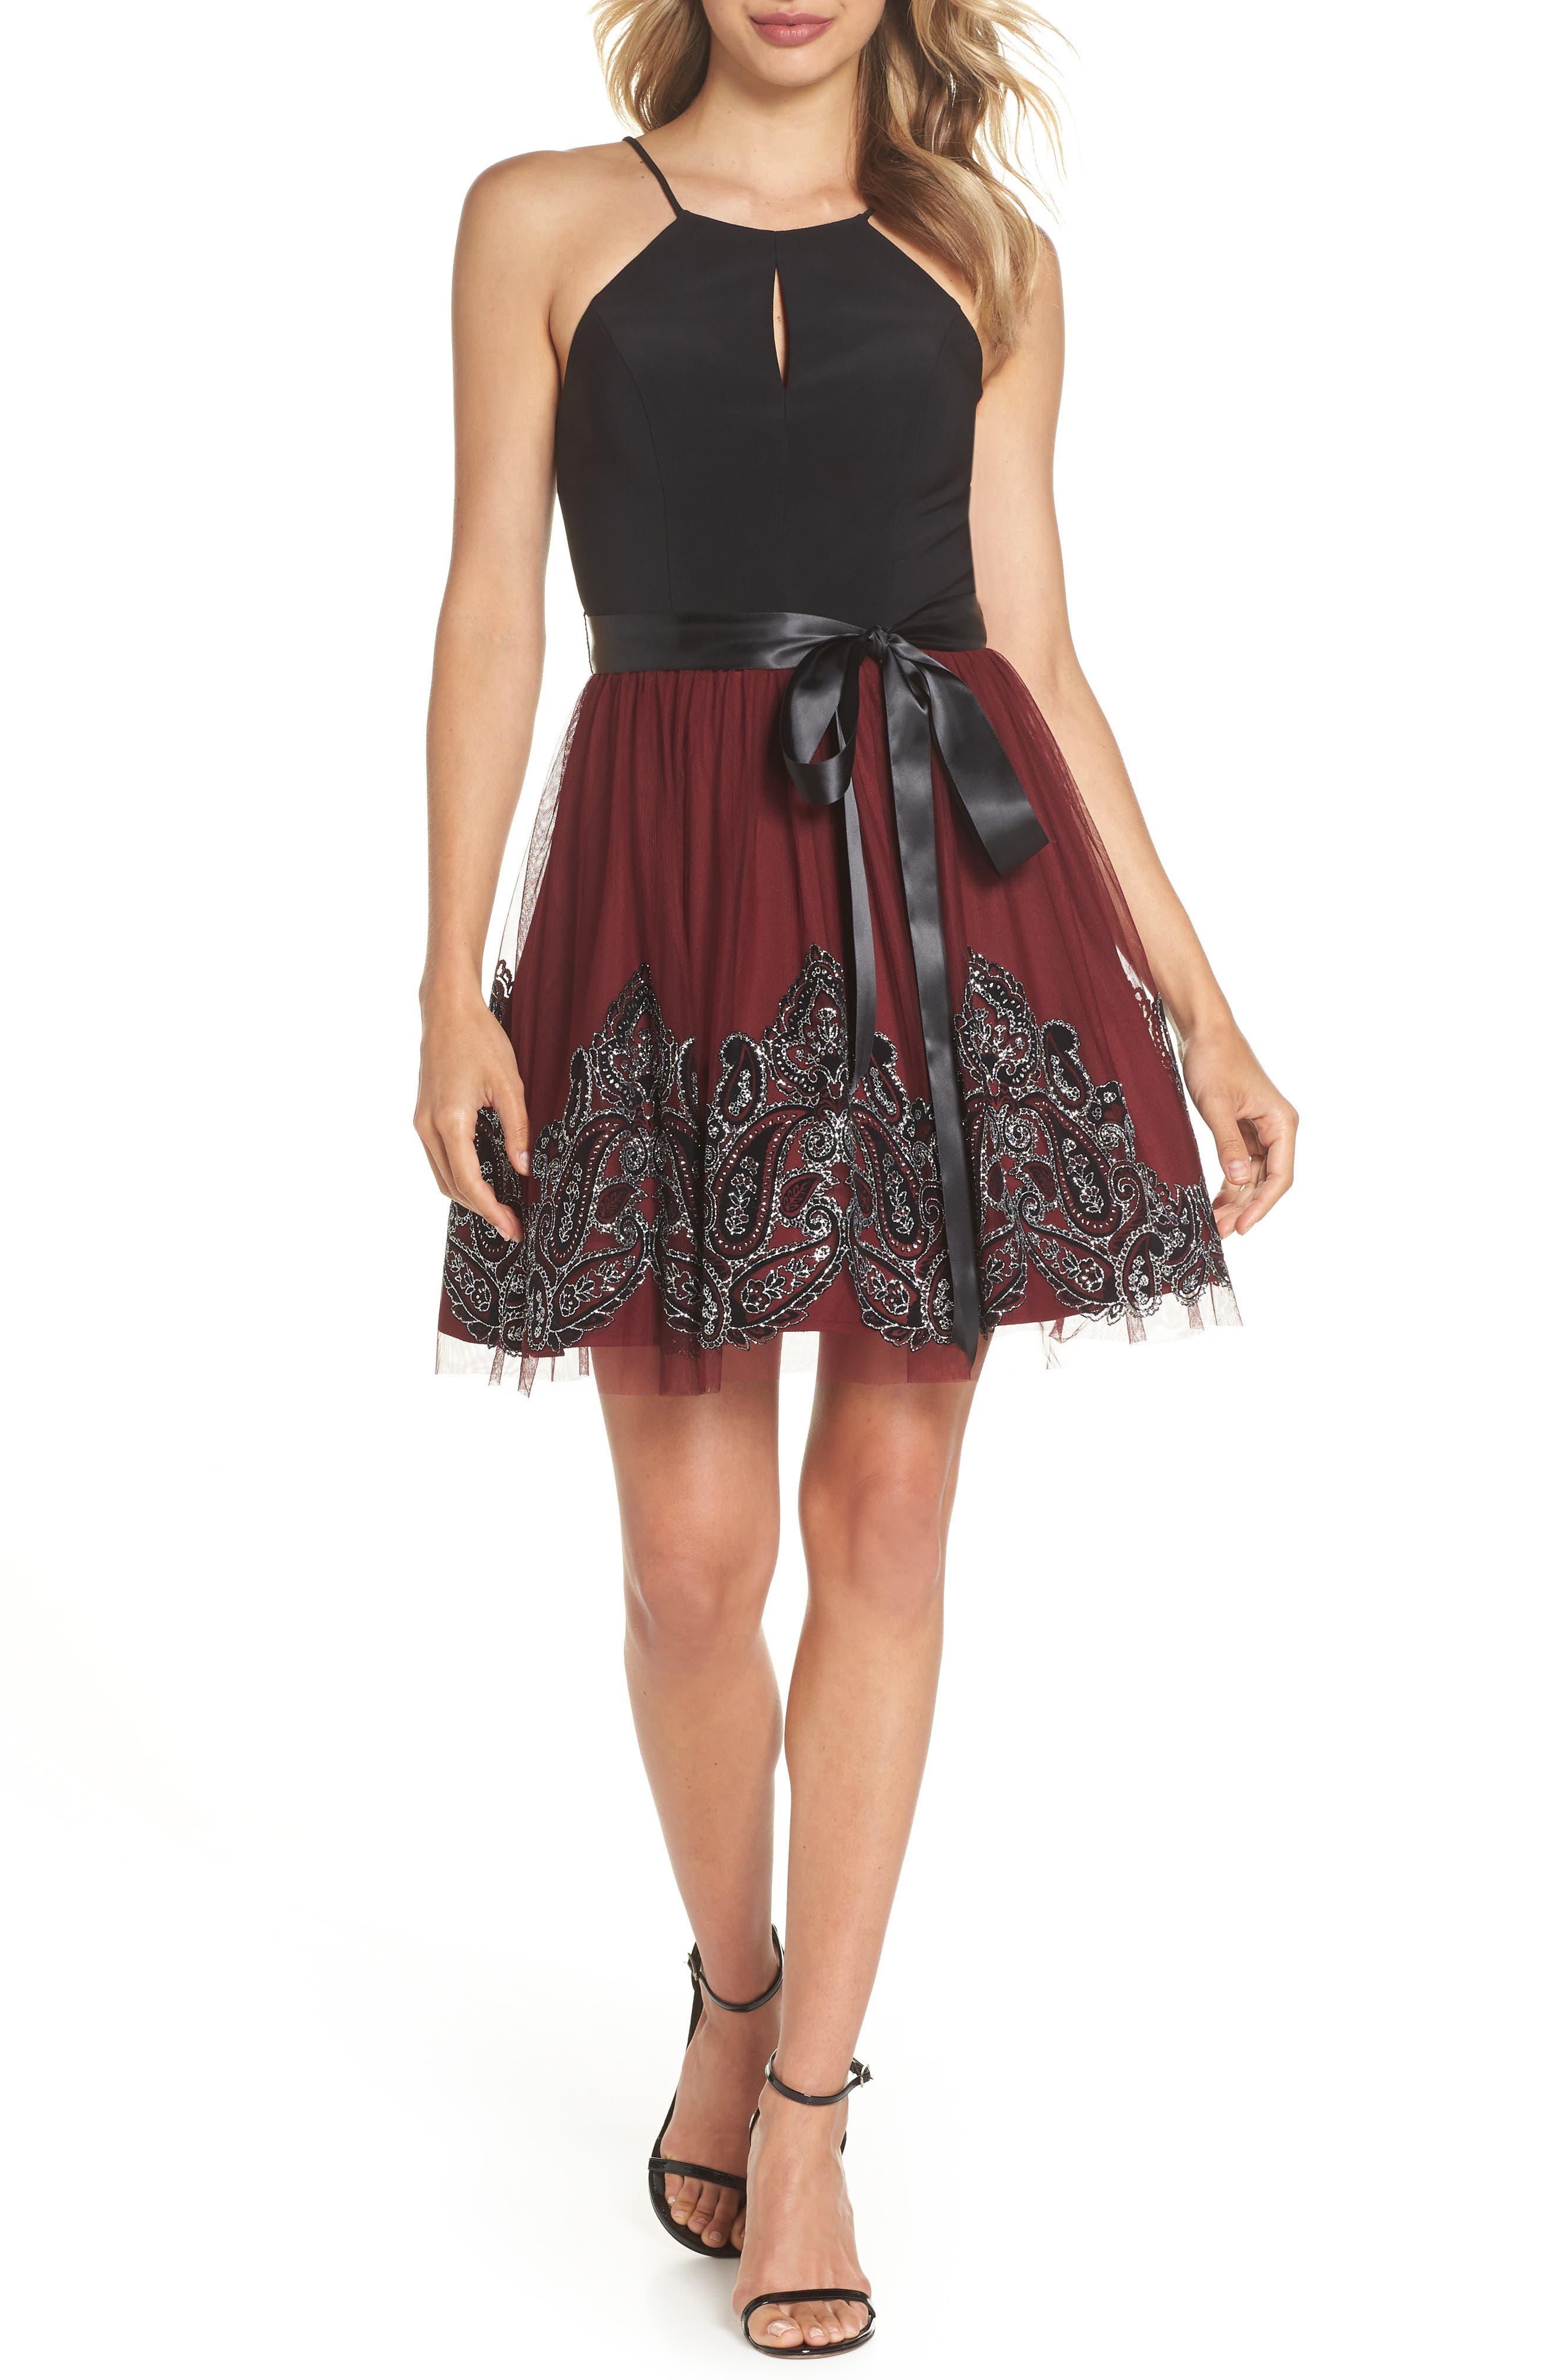 Blondie Nites Embroidered Fit & Flare Dress